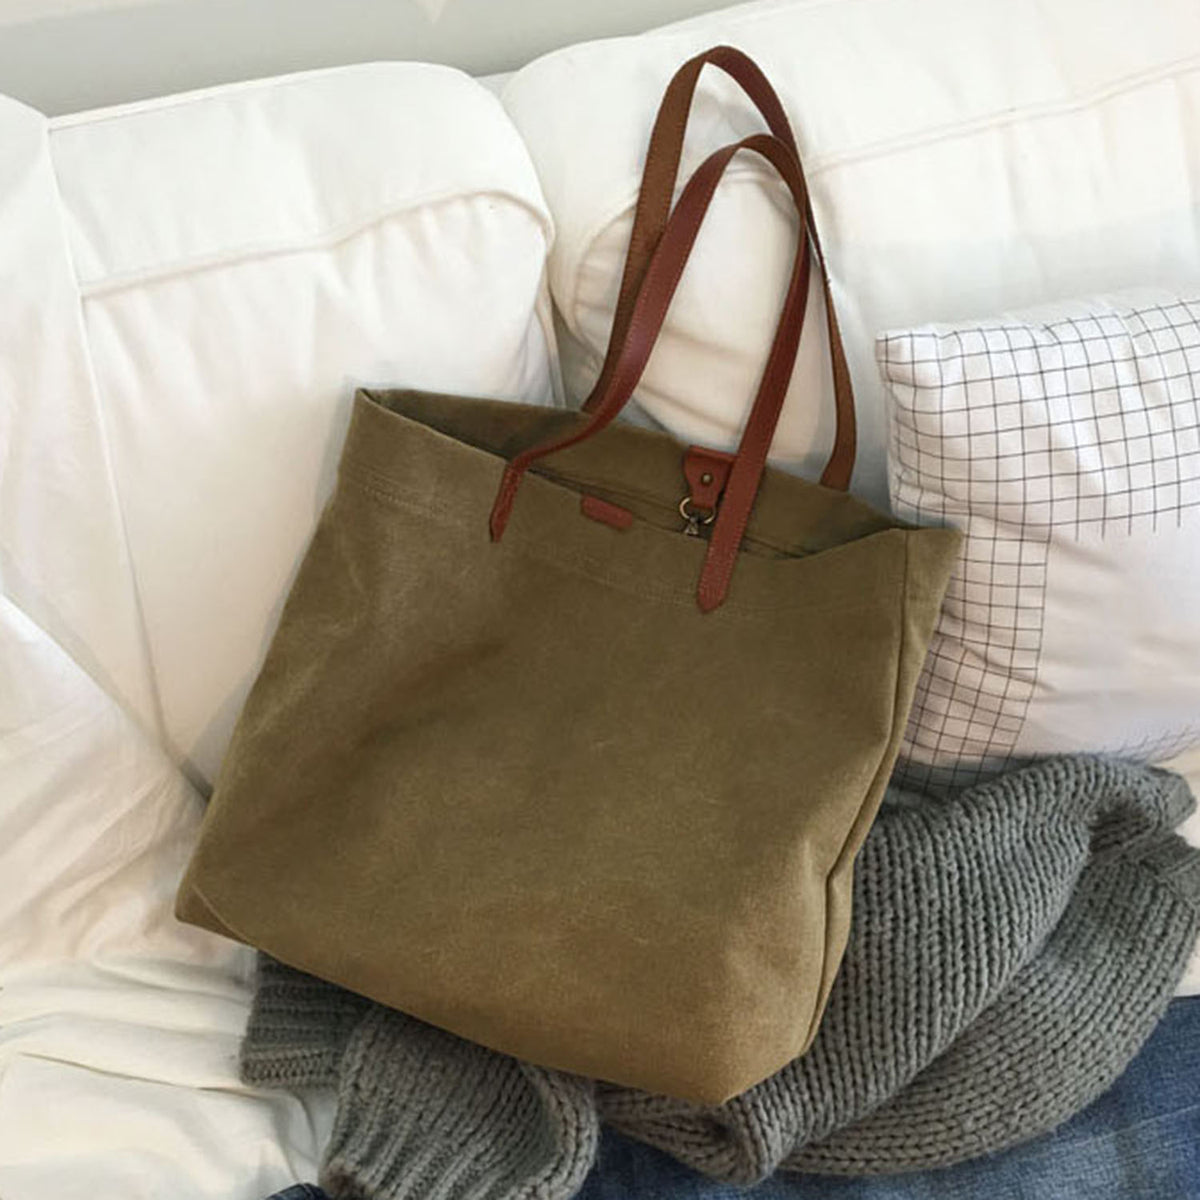 Canvas Bag with Leather Handles Transport Oversized Tote Bags - worthtryit.com